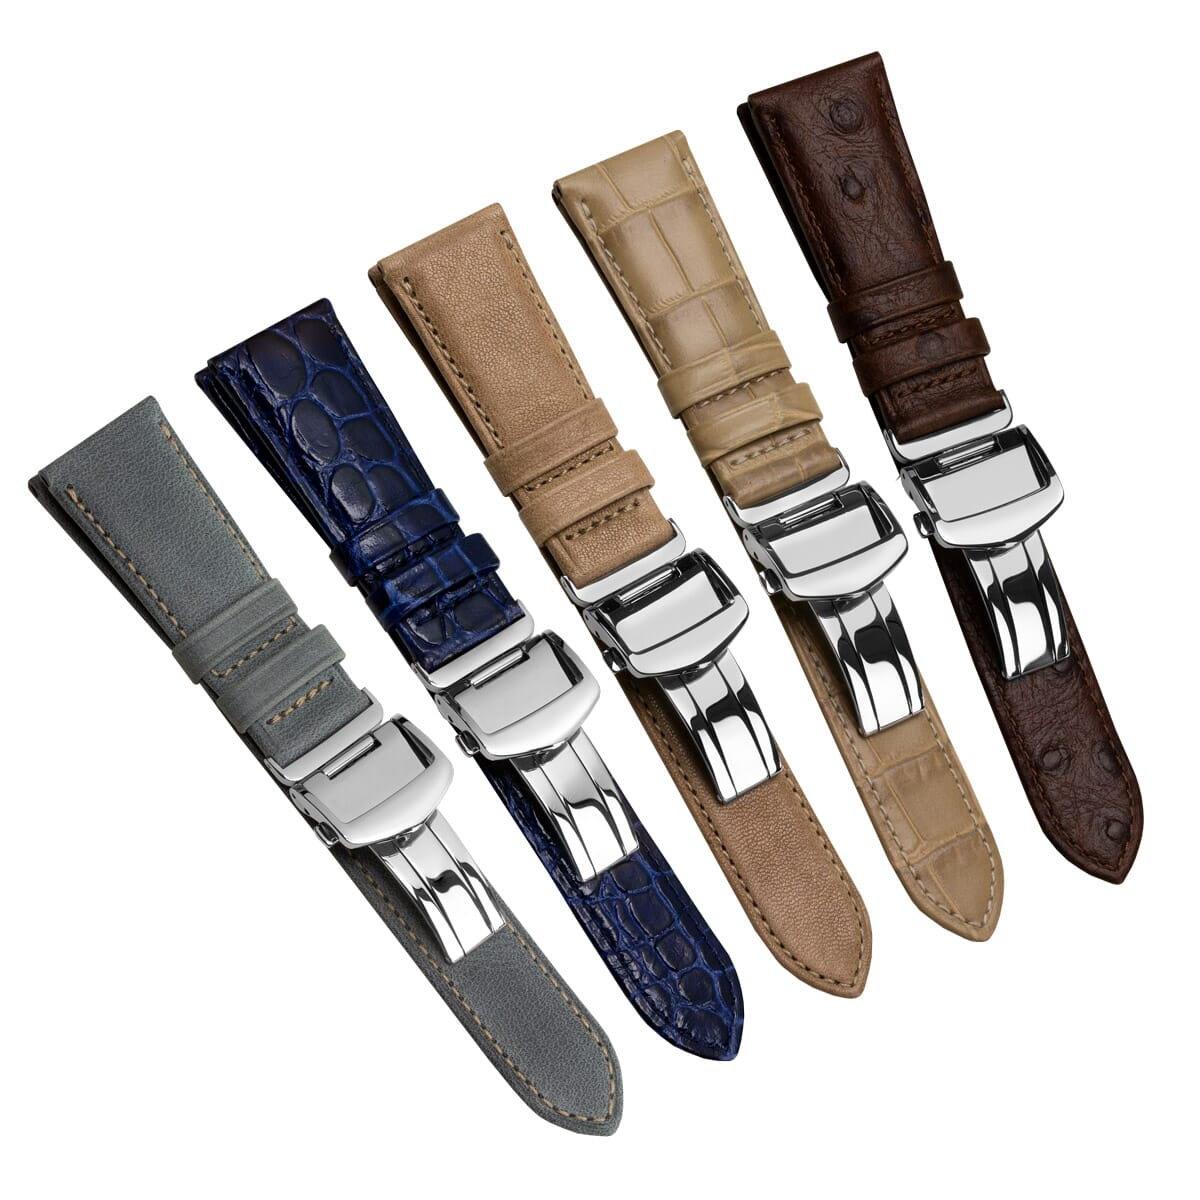 Genuine Leather Watch Straps With Deployant Buckles